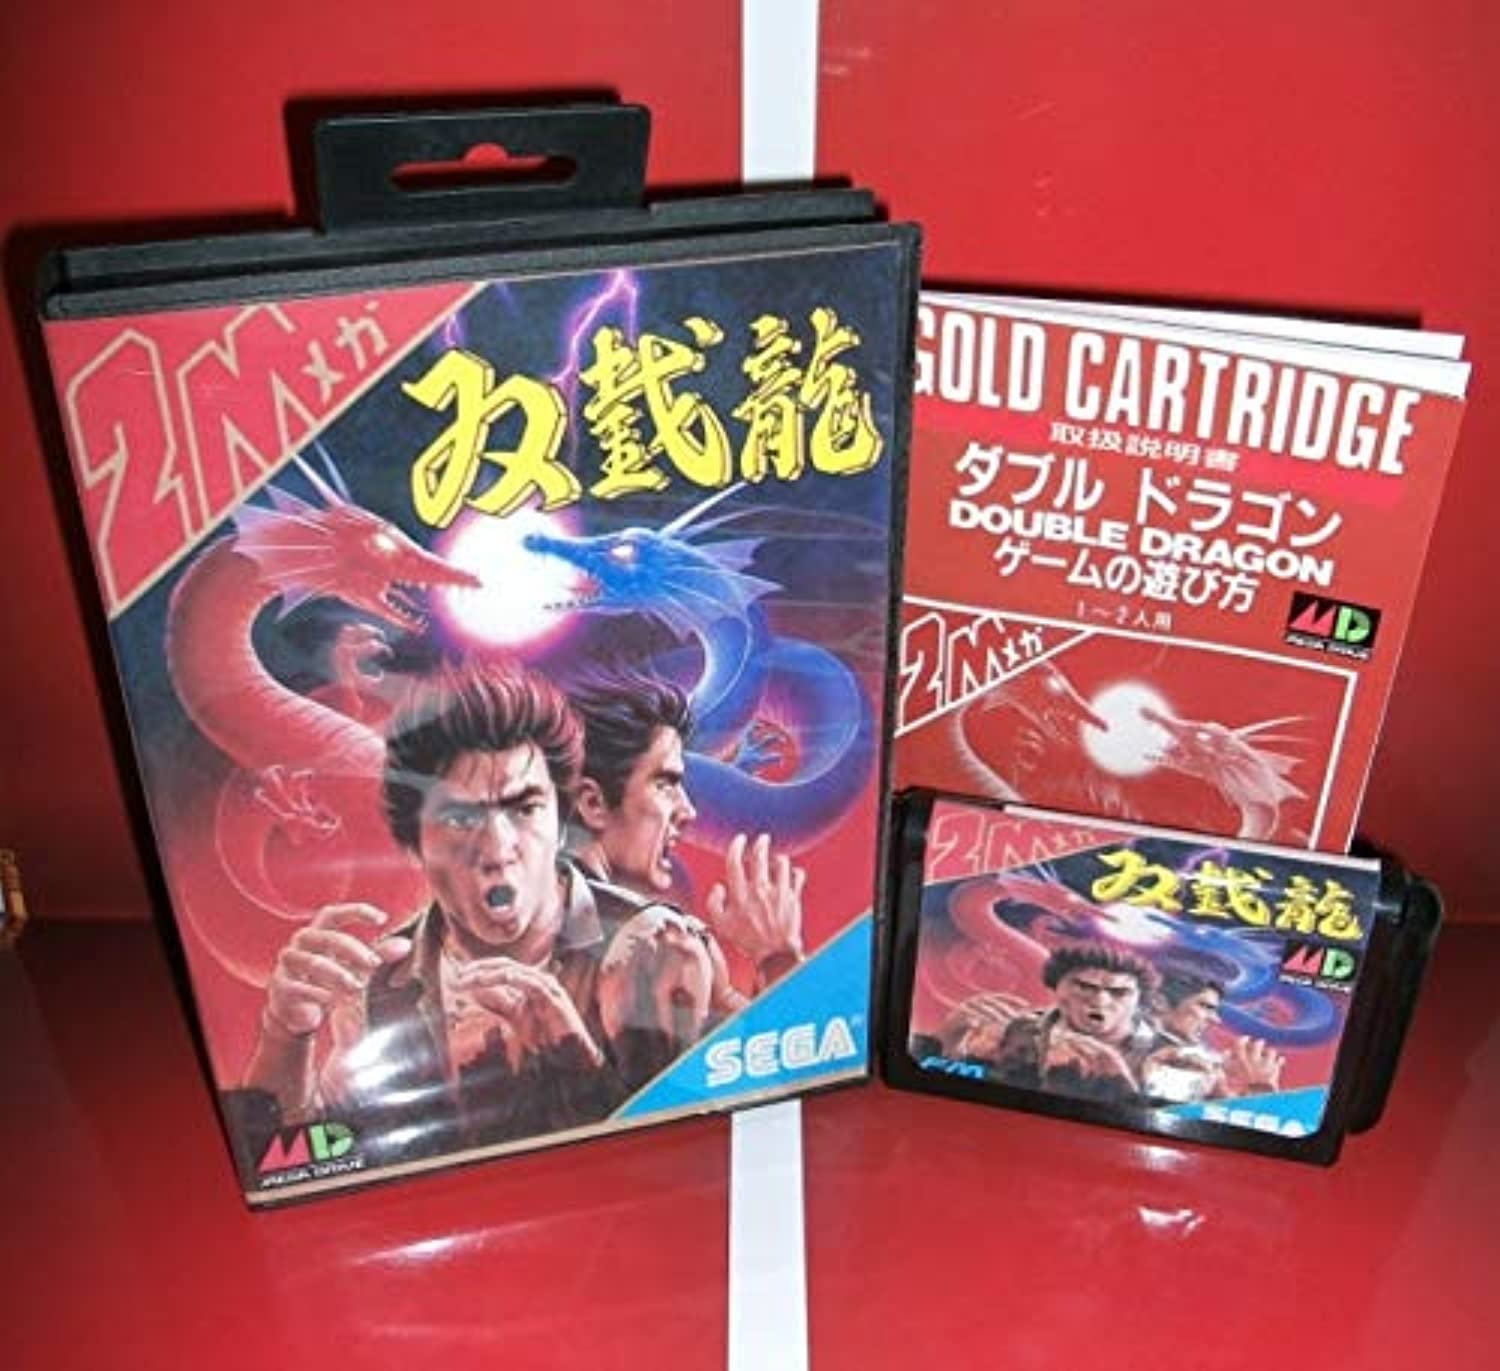 Value-Smart-ToysDouble Dragon Japan Cover with Box and Manual for Sega MegaDrive Genesis Video Game Console 16 bit MD Card